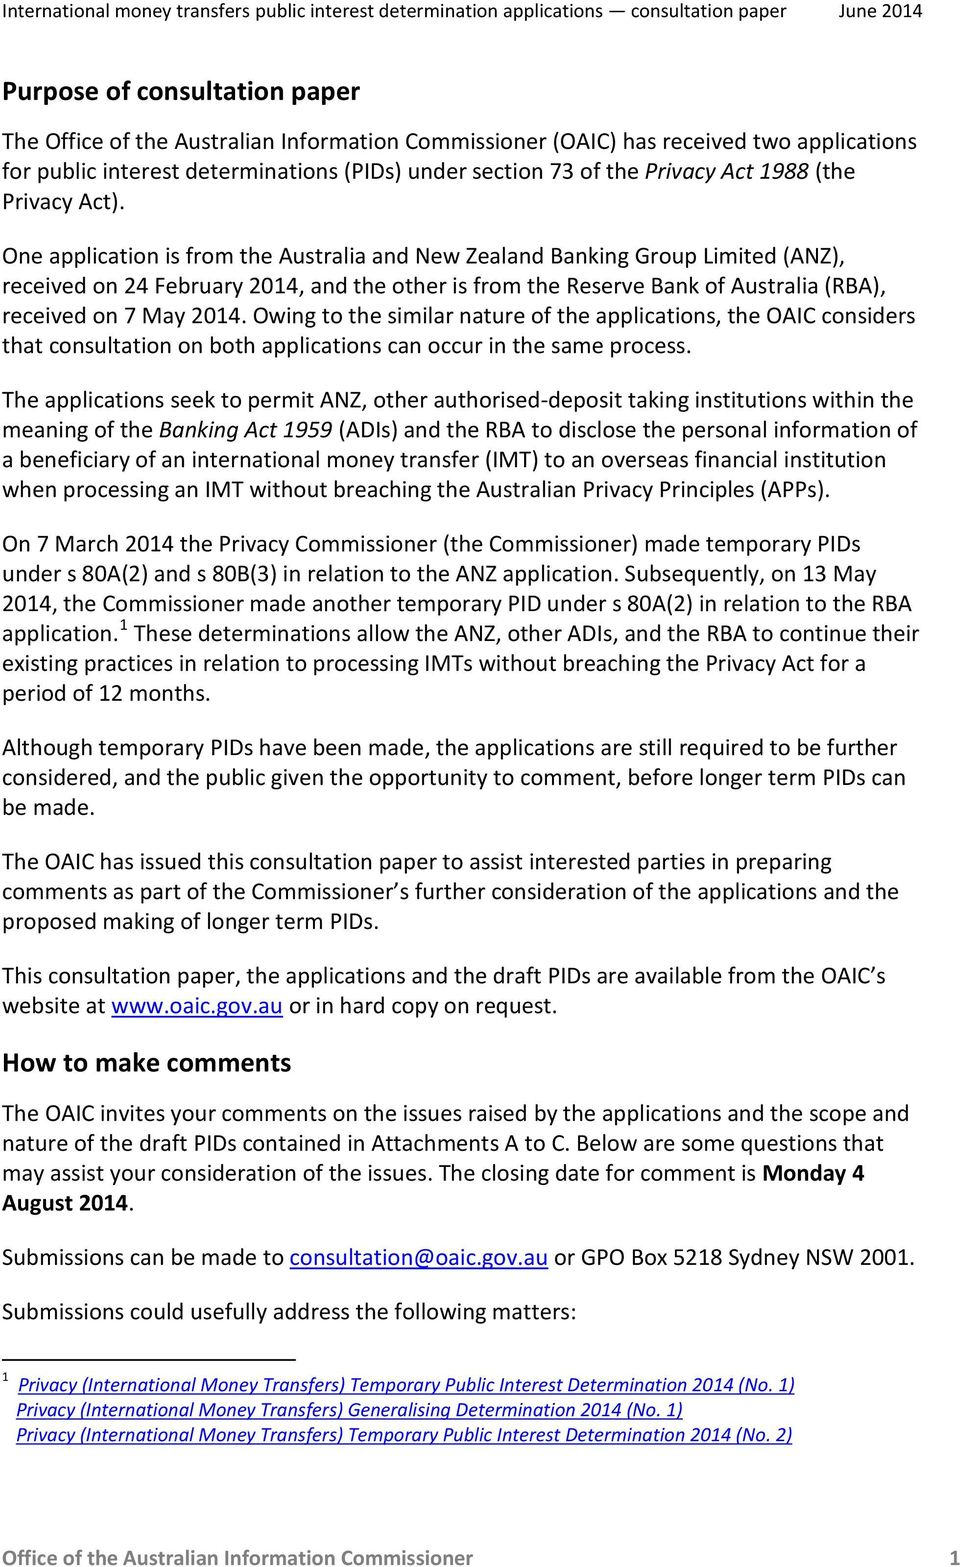 One application is from the Australia and New Zealand Banking Group Limited (ANZ), received on 24 February 2014, and the other is from the Reserve Bank of Australia (RBA), received on 7 May 2014.